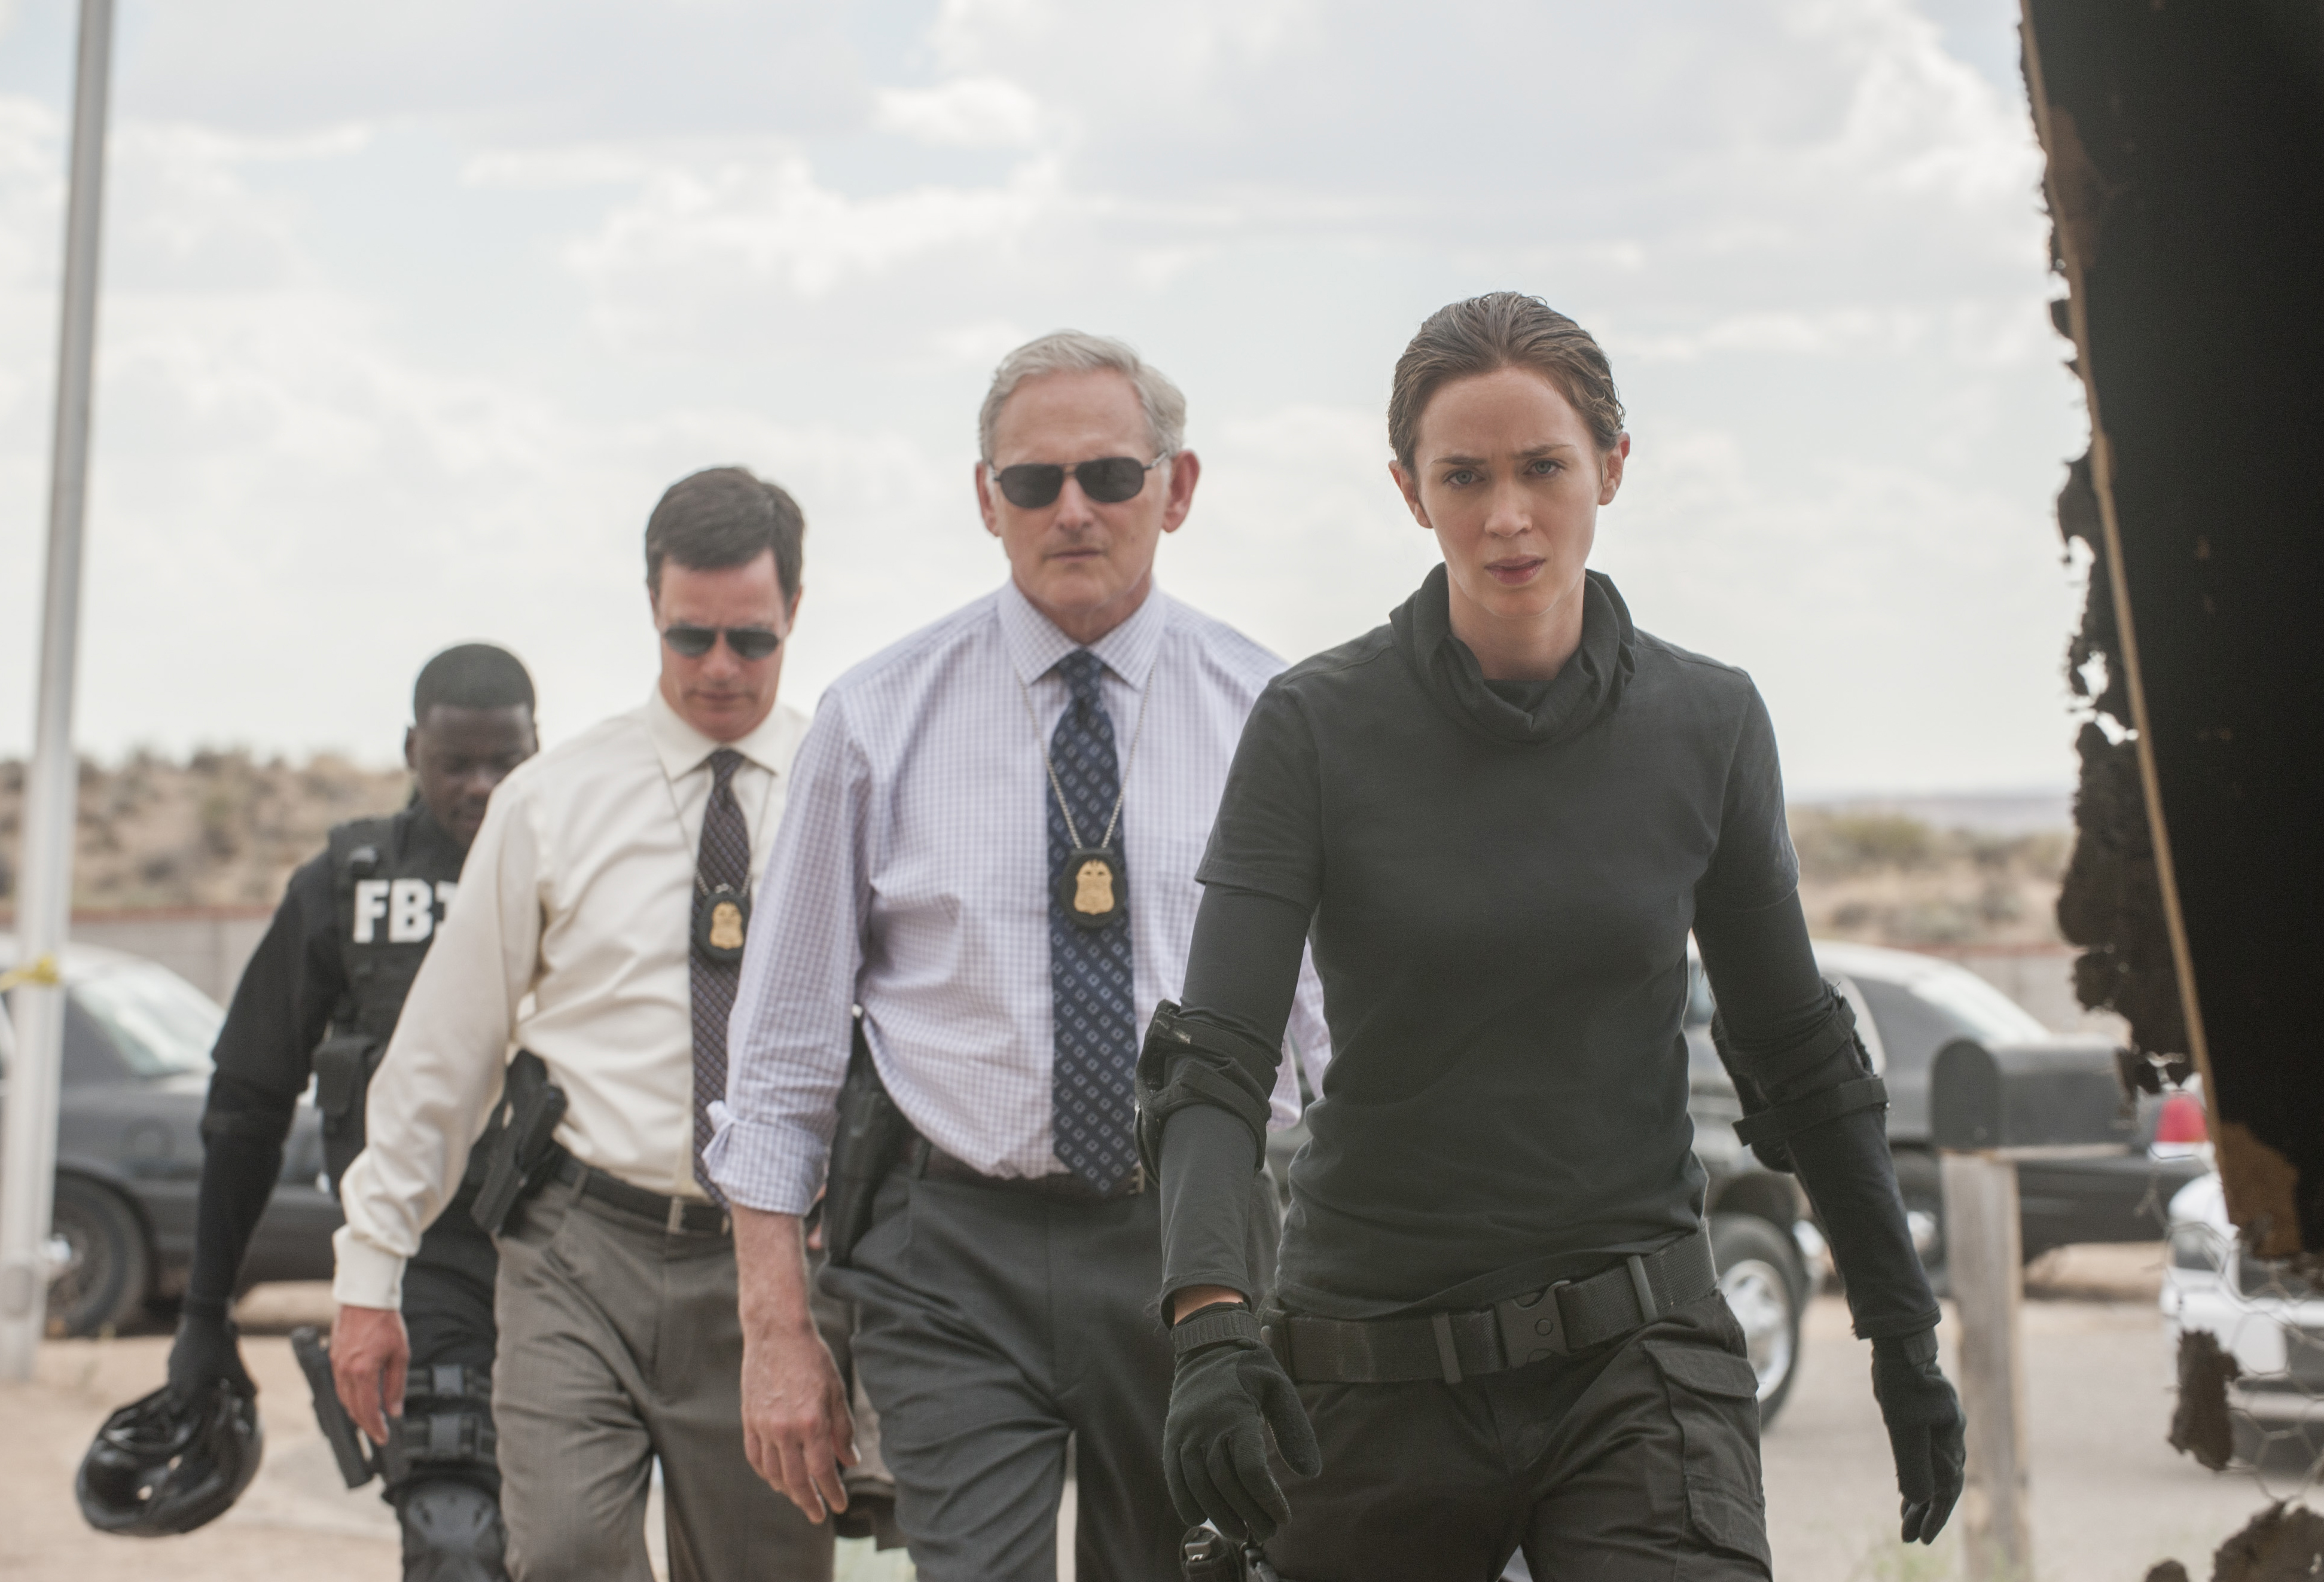 Movie Review: 'Sicario' shows the underbelly of the drug